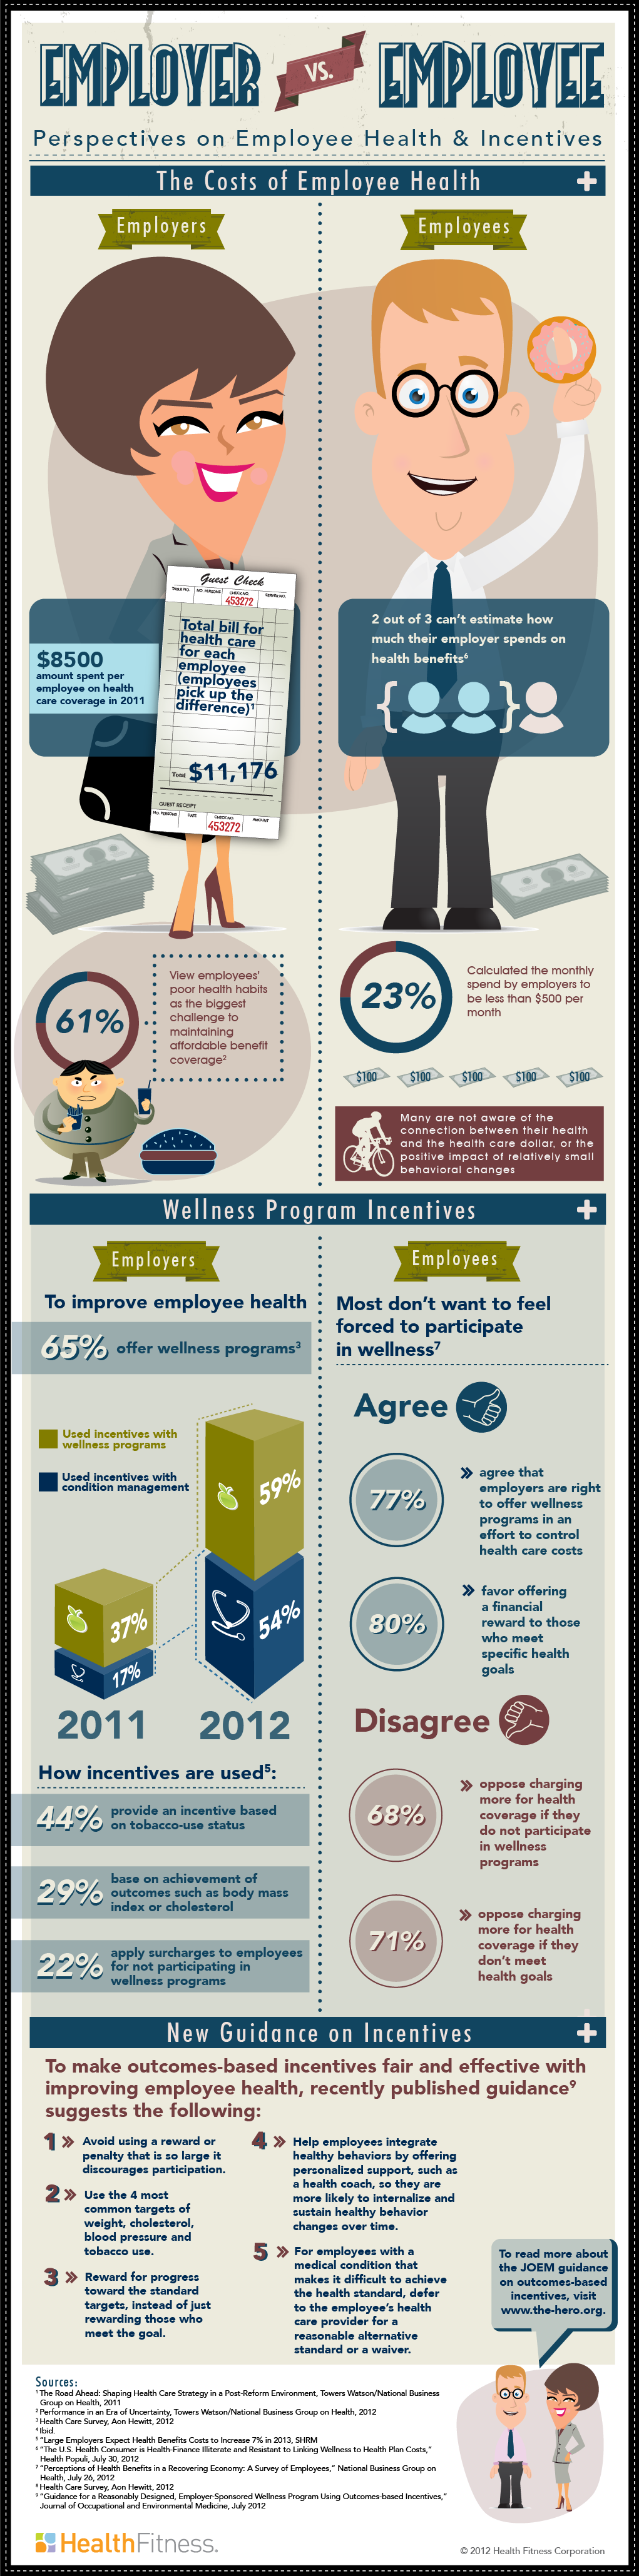 How Much Do Employers Spend on Employee Healthcare